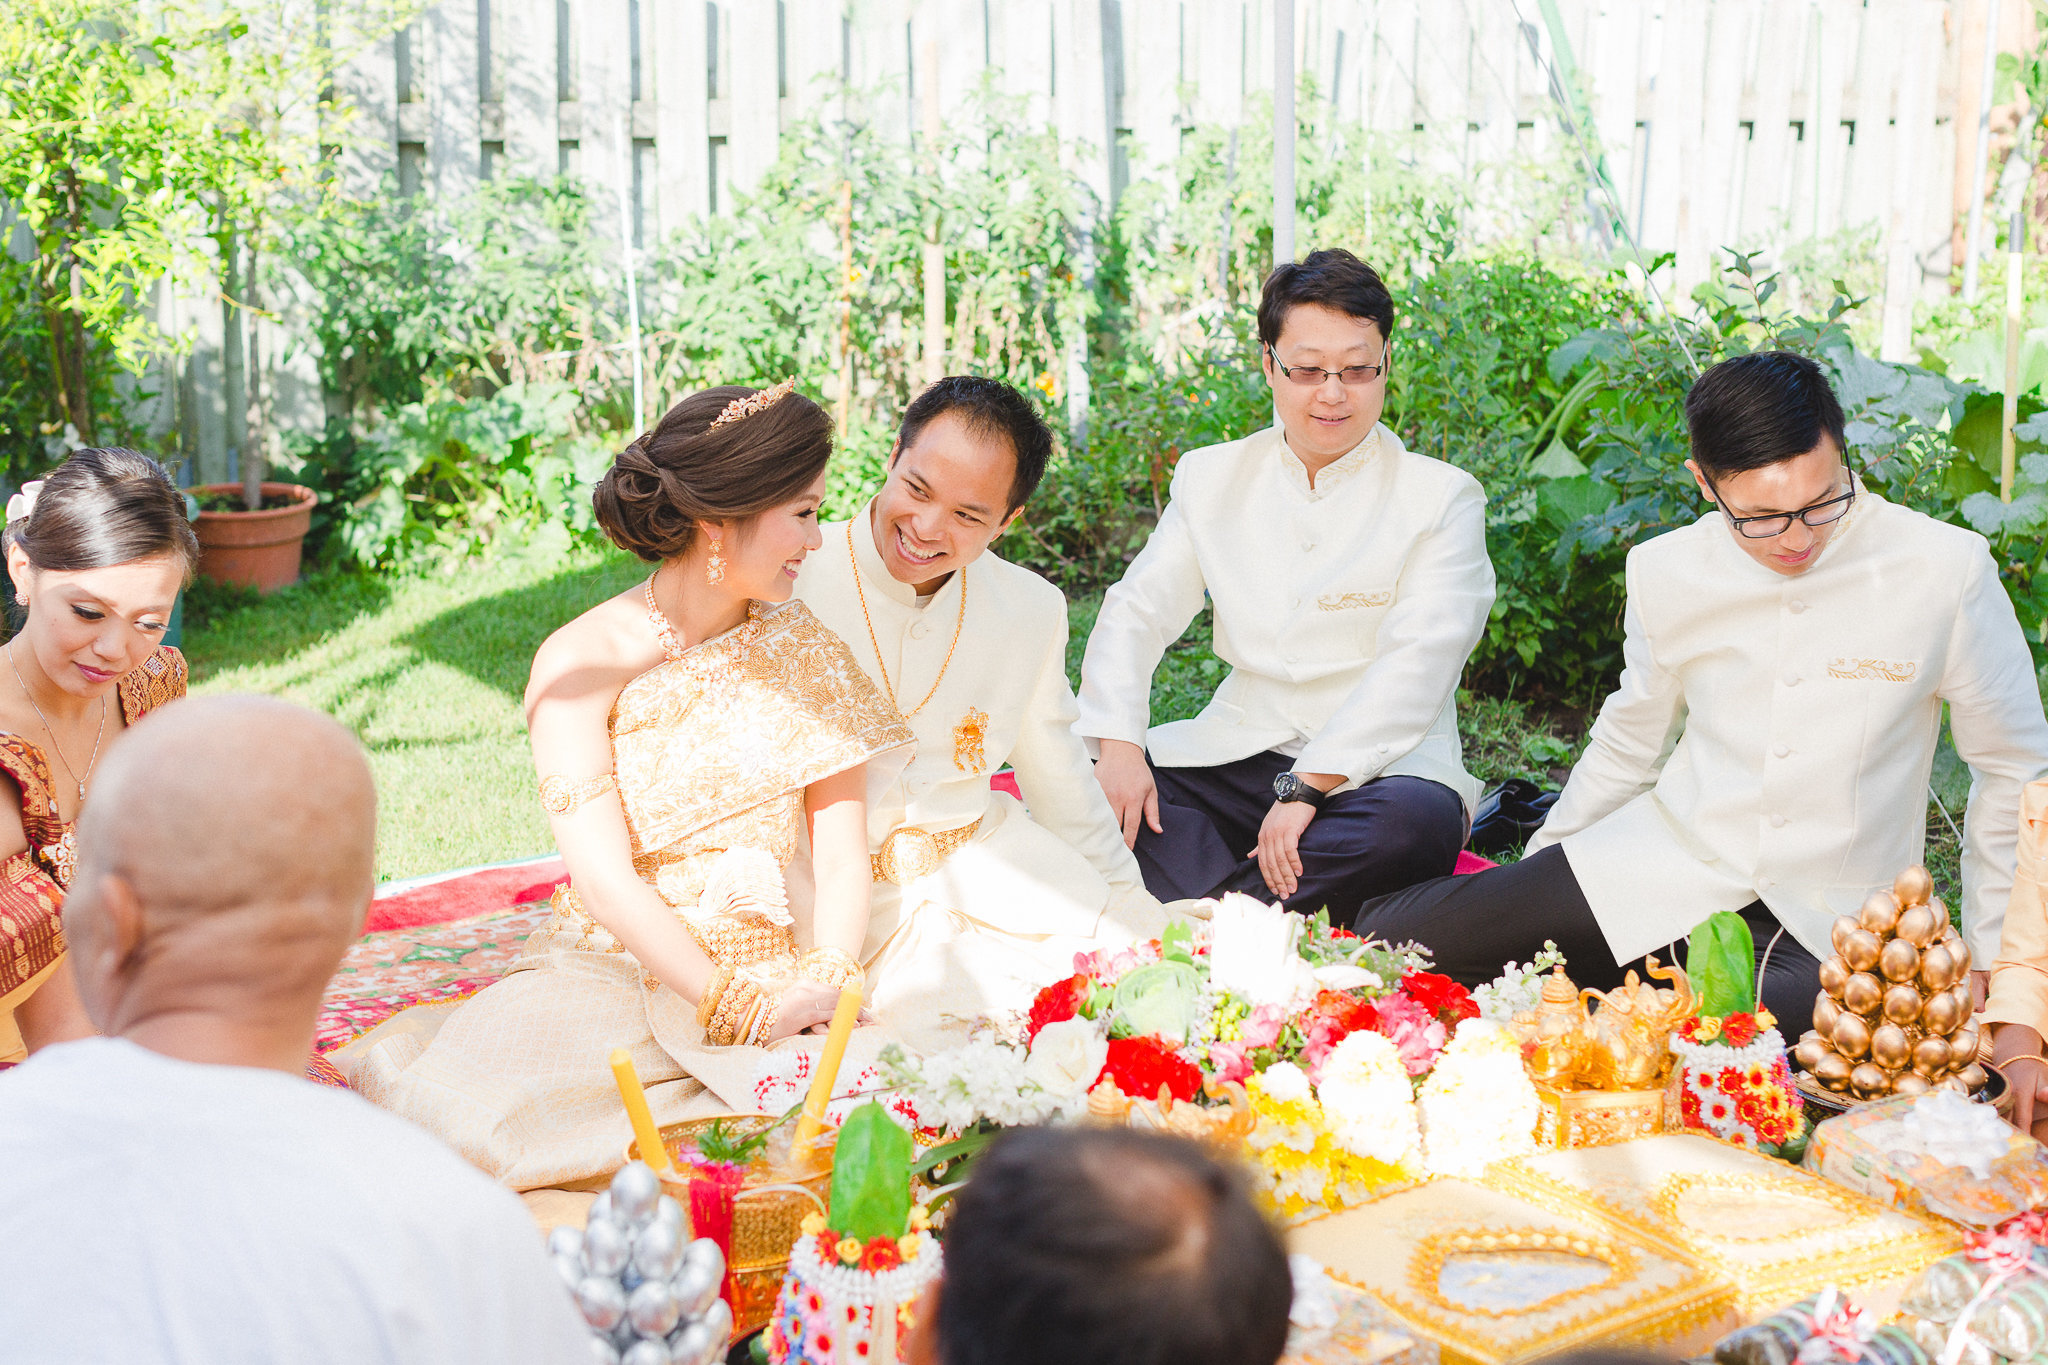 photographe-montreal-mariage-culturel-traditionnel-cambodgien-lisa-renault-photographie-traditional-cultural-cambodian-wedding-28